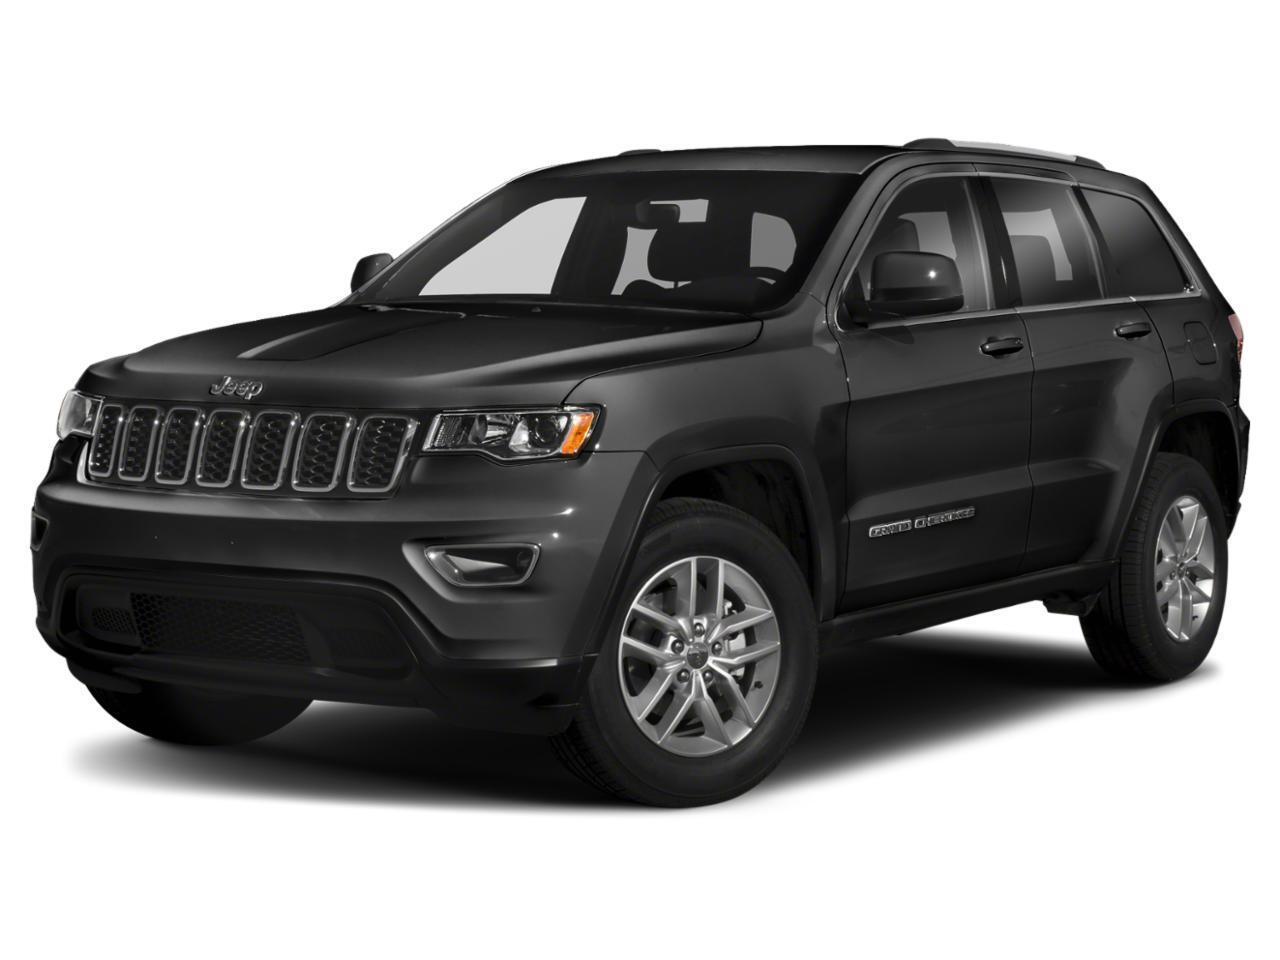 used 2020 jeep grand cherokee altitude 4x4 for sale in milton, ontario carpages.ca